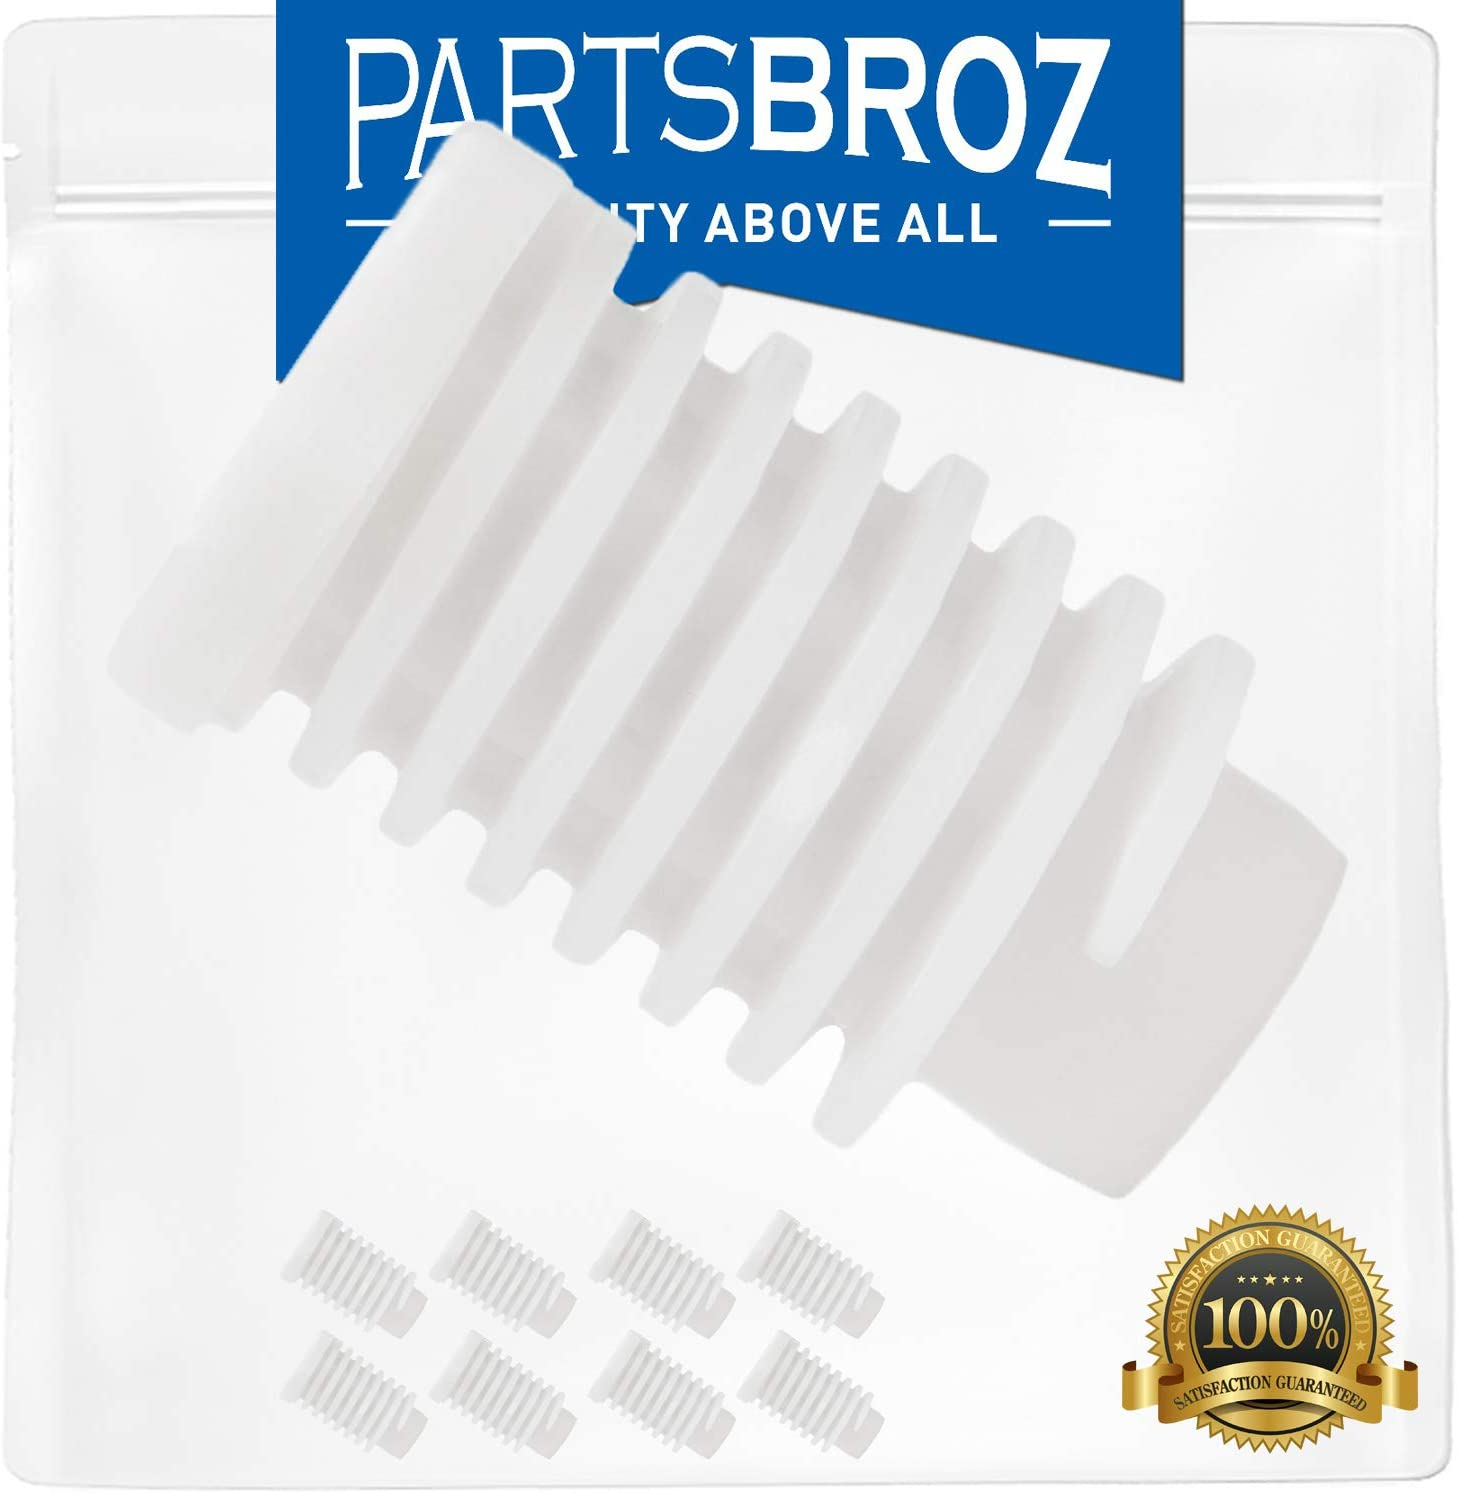 49621 Leveling Foot (8-Pack) by PartsBroz - Compatible with Whirlpool Dryers - Replaces 279810, 1373044, 2012, 26000688222, 3392100, 3392100D, 40021, 4319350, 49591